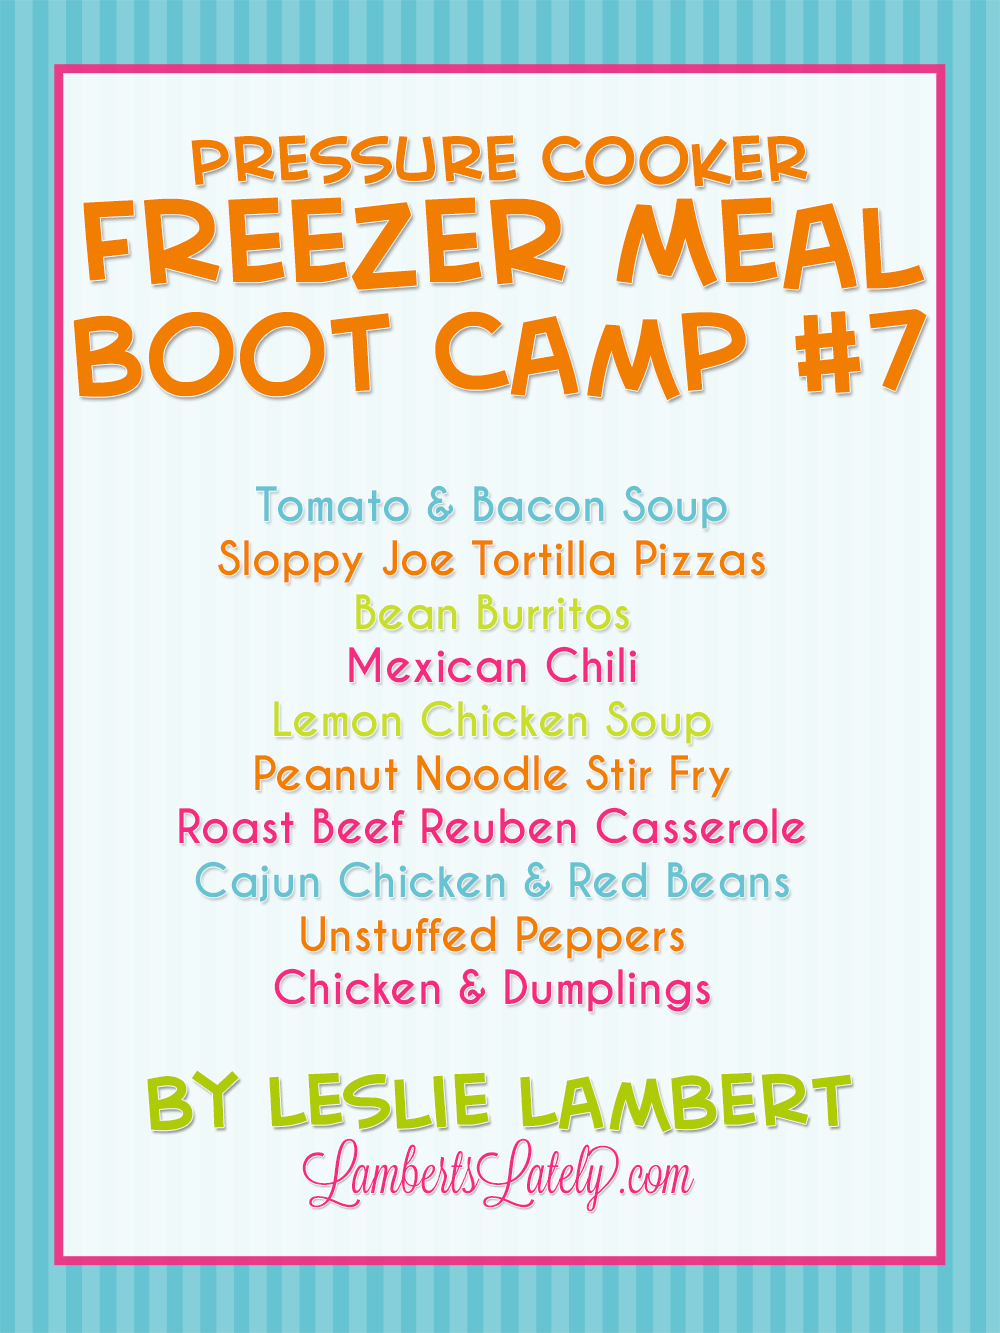 Pressure Cooker Freezer Meal Boot Camp #7